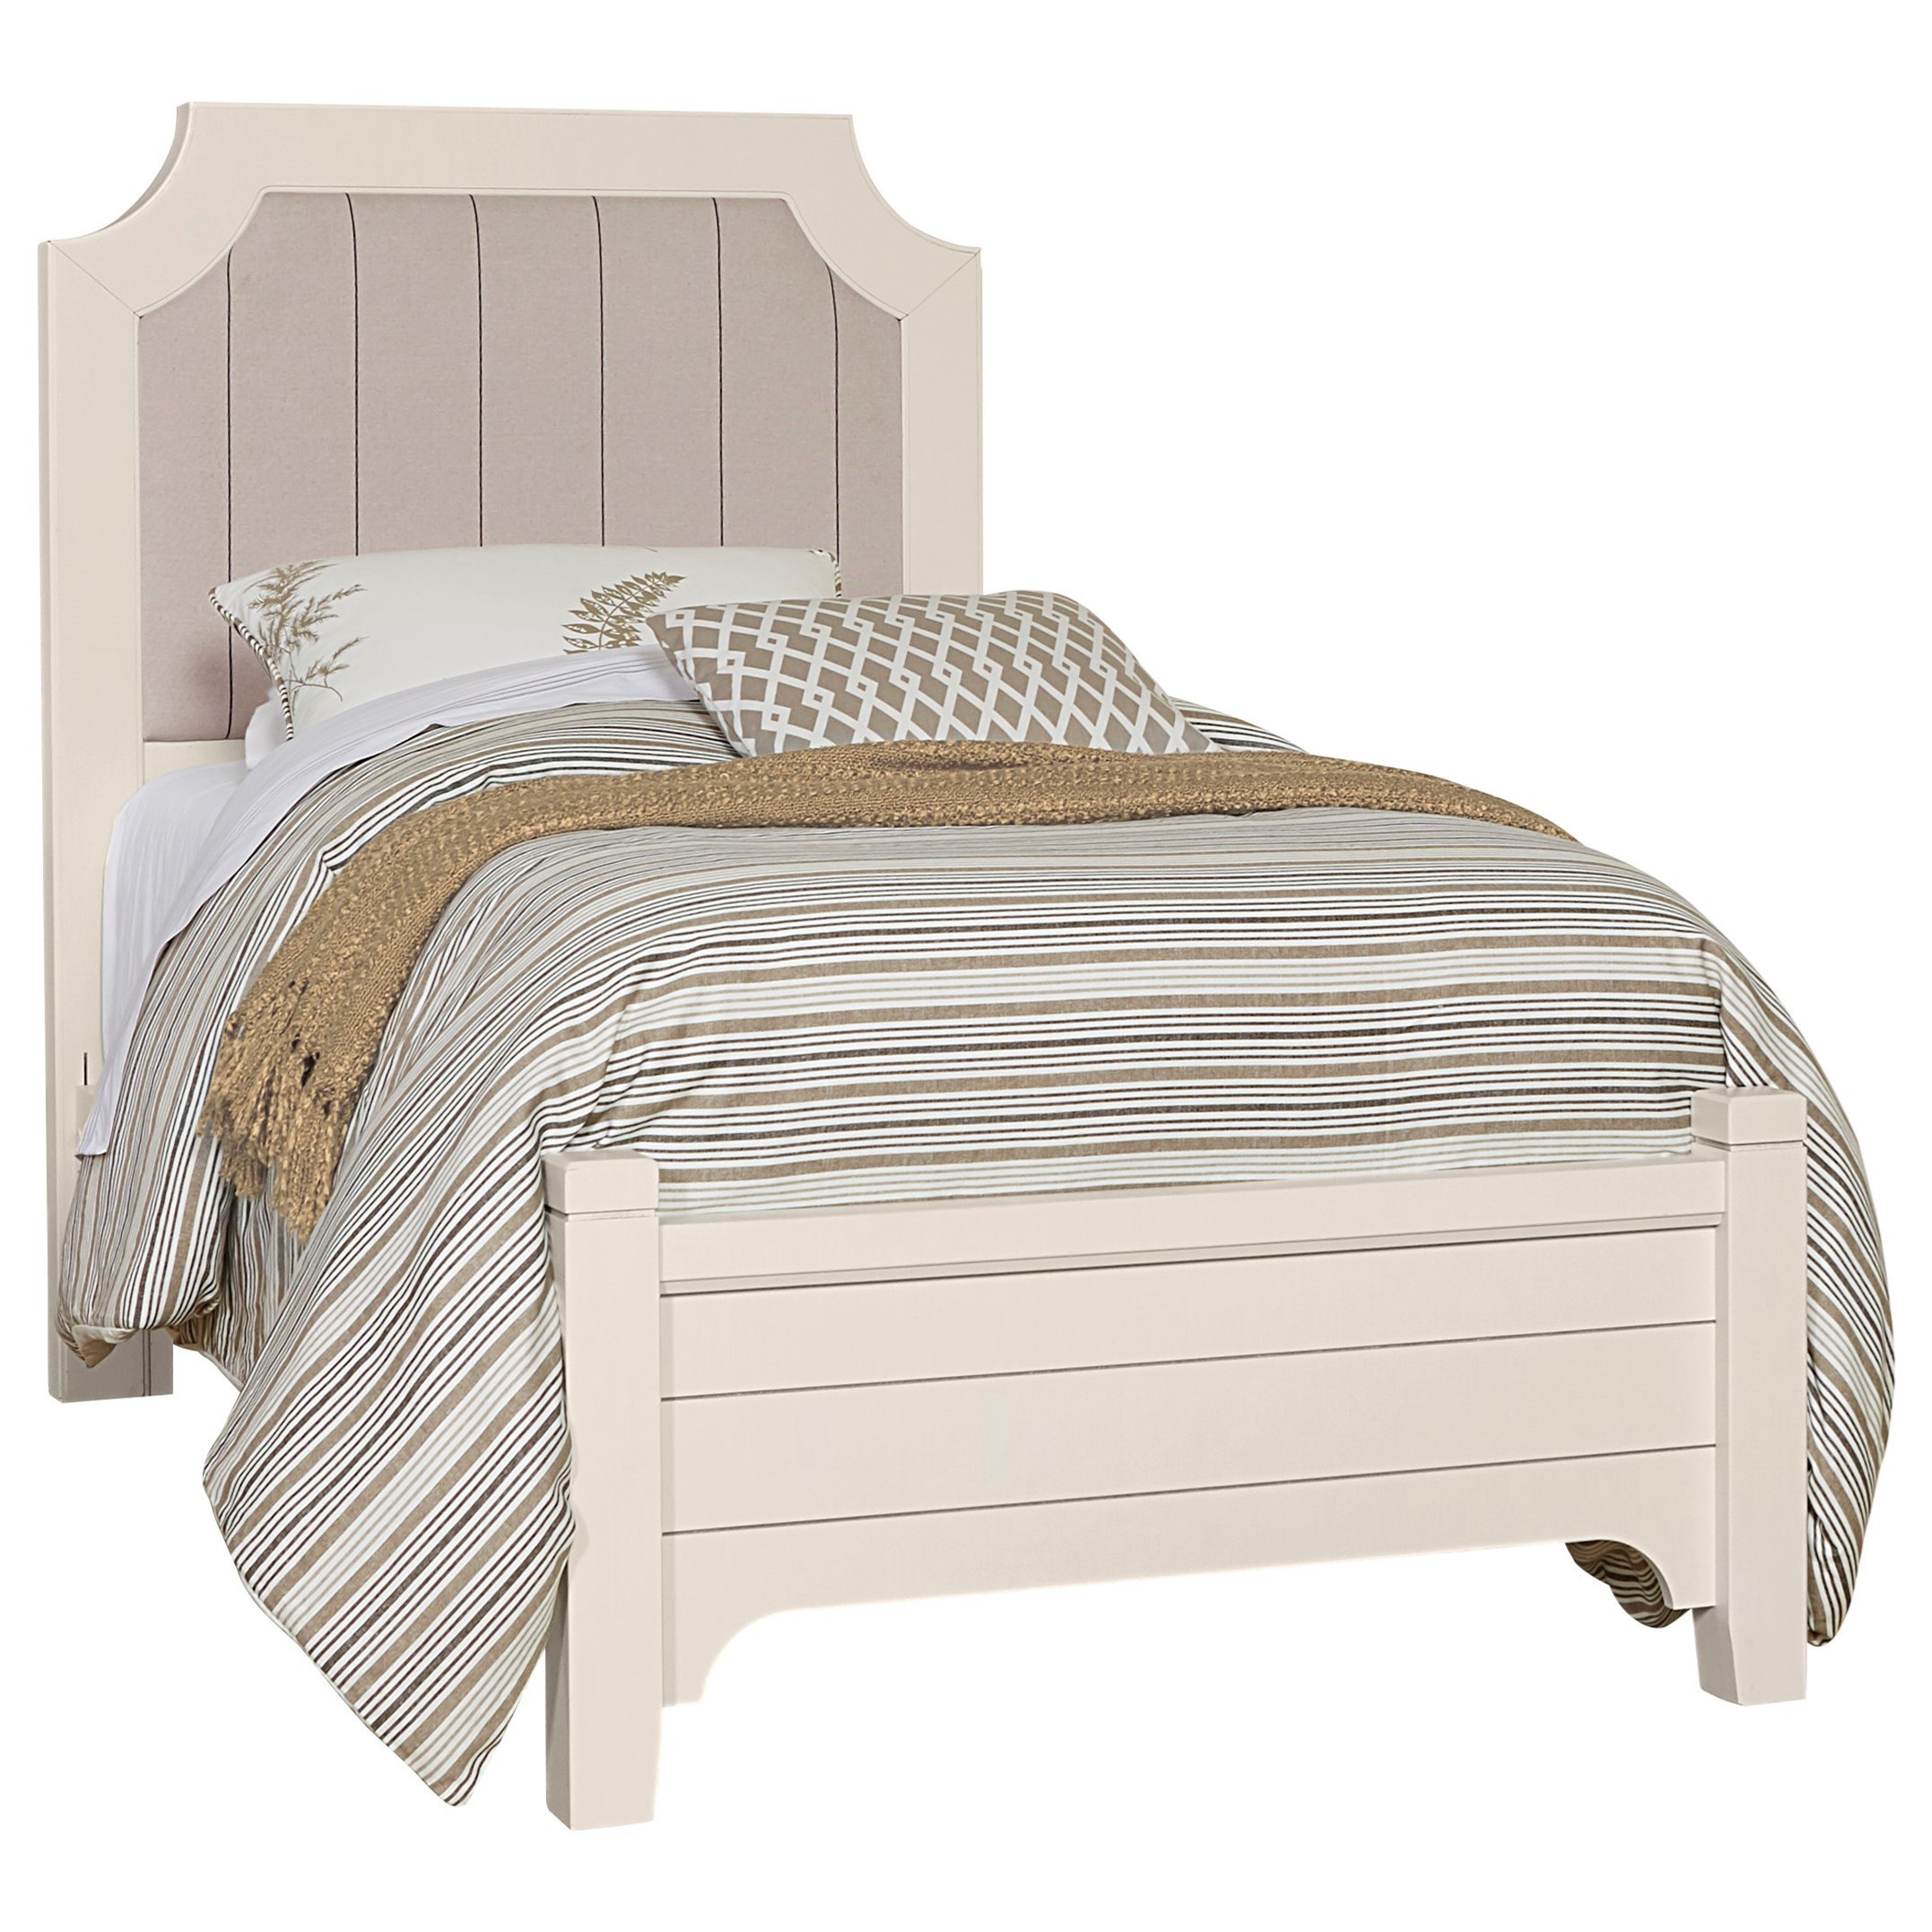 Bungalow Full Upholstered Bed by Vaughan-Bassett at Crowley Furniture & Mattress